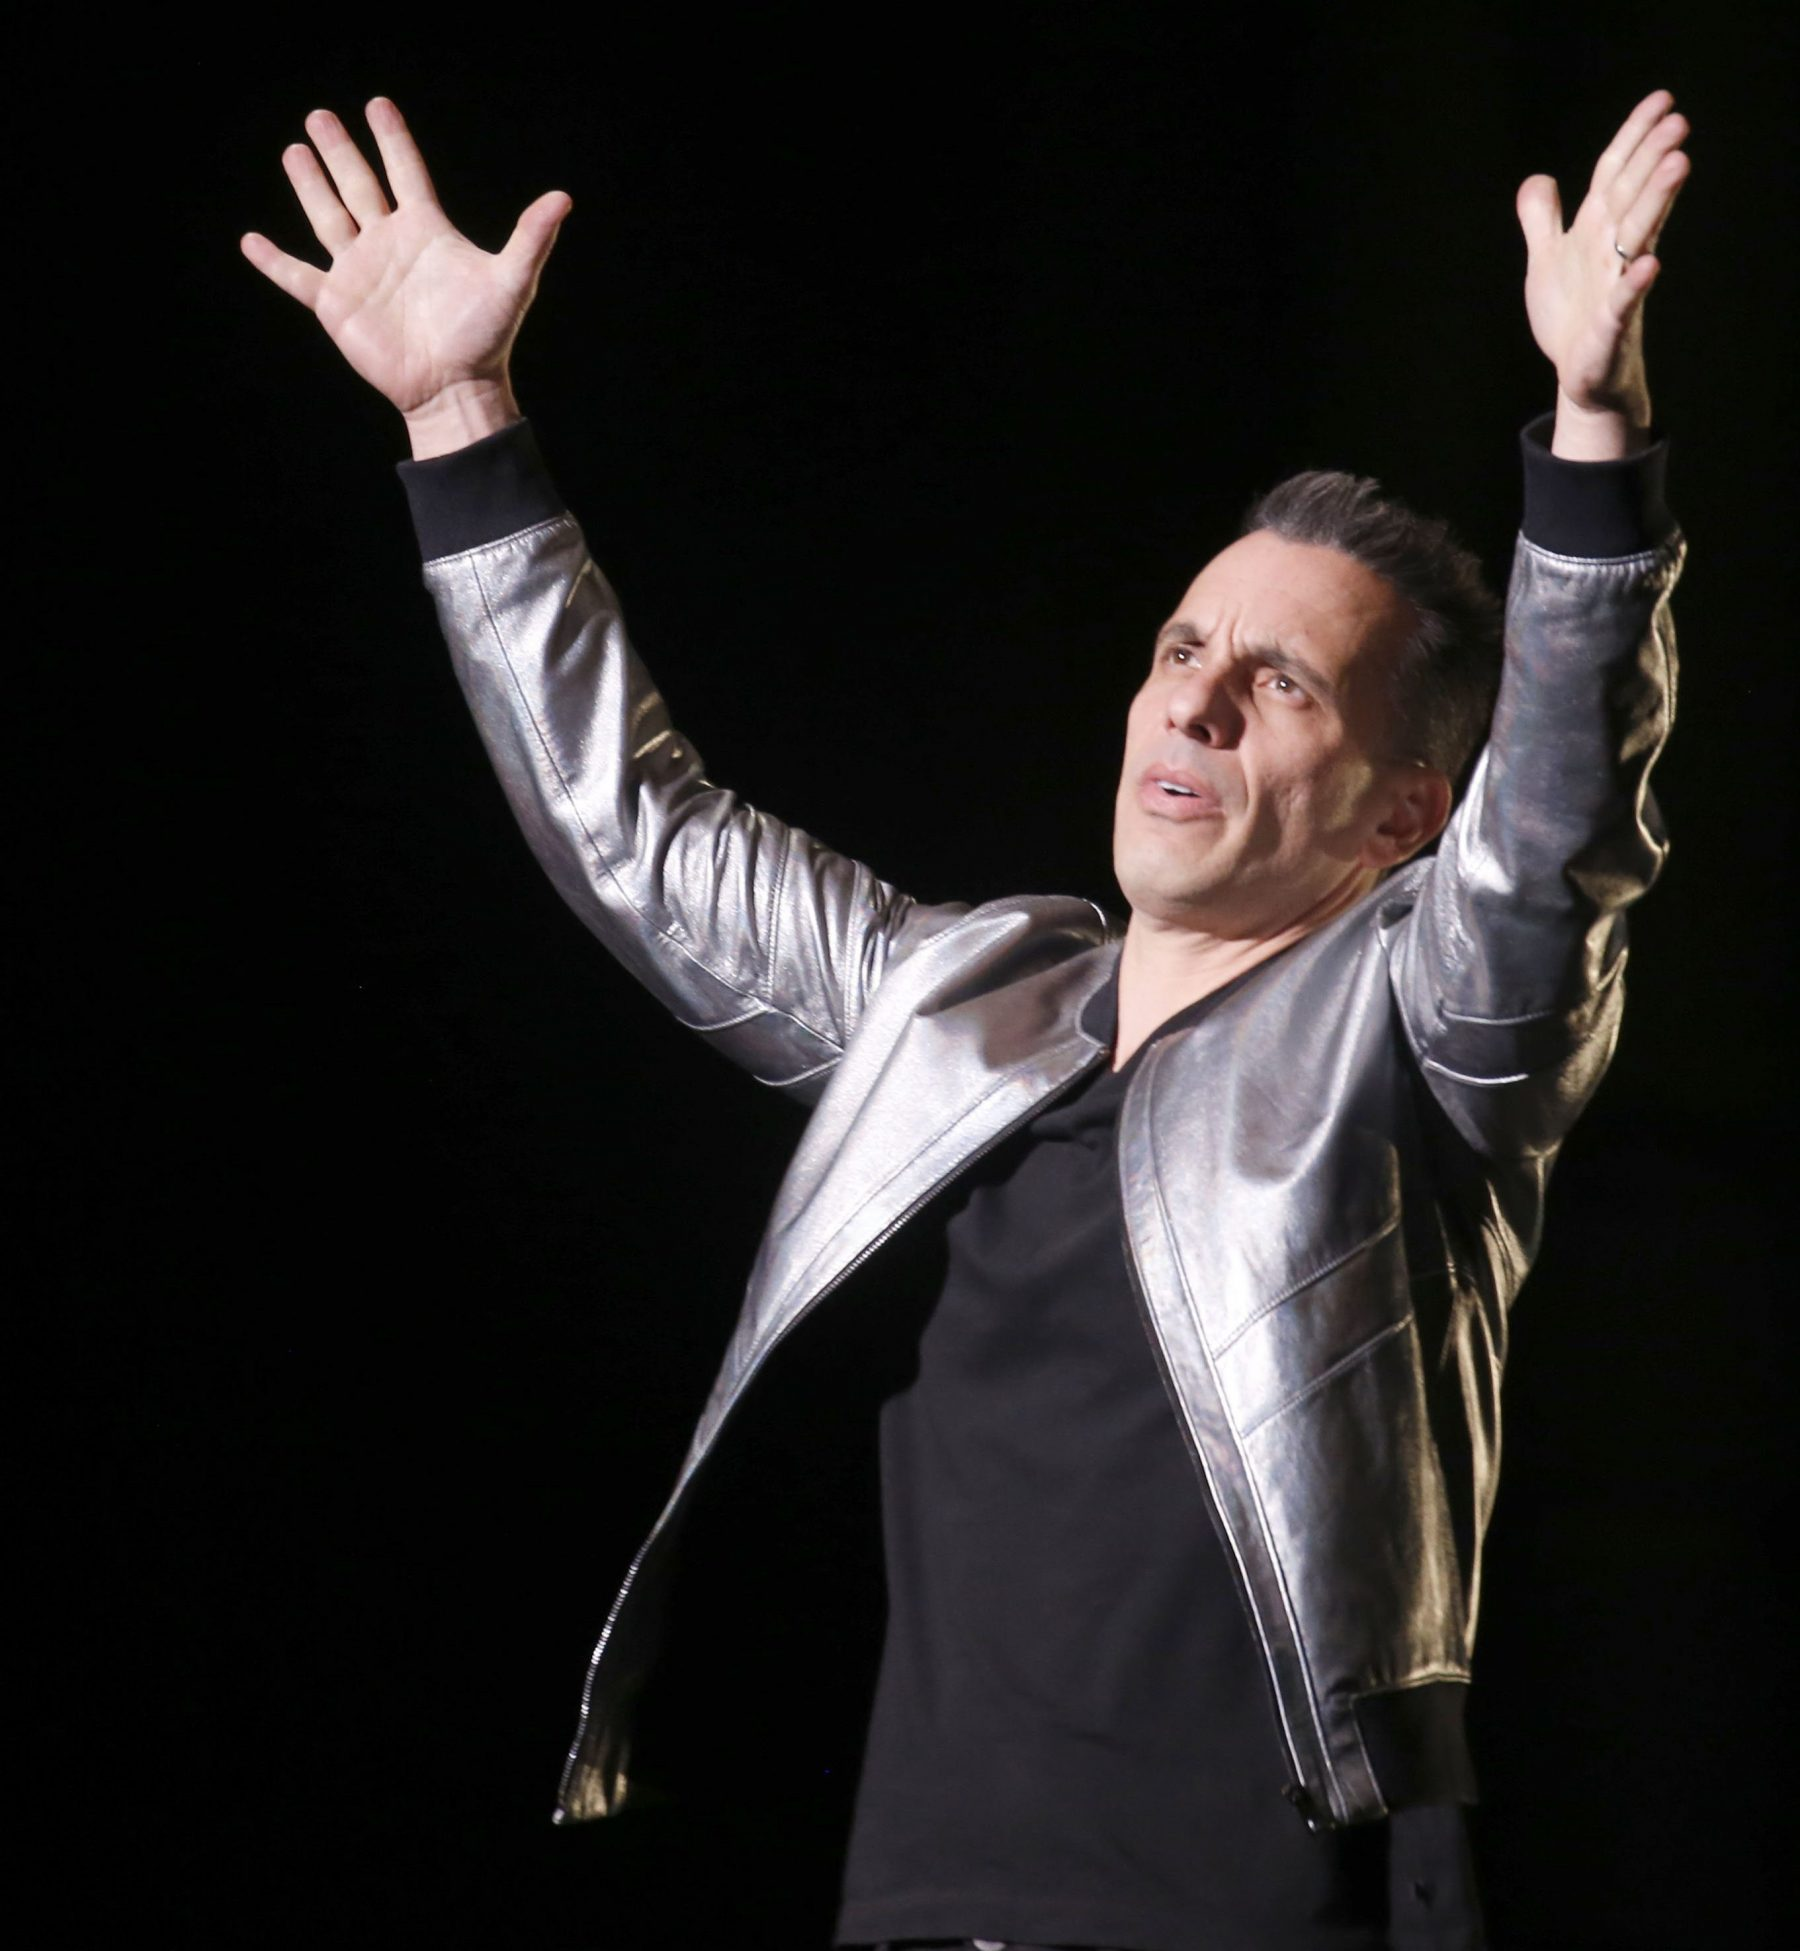 Sebastian Maniscalco brings side-splitting stories, laughs to Shea's